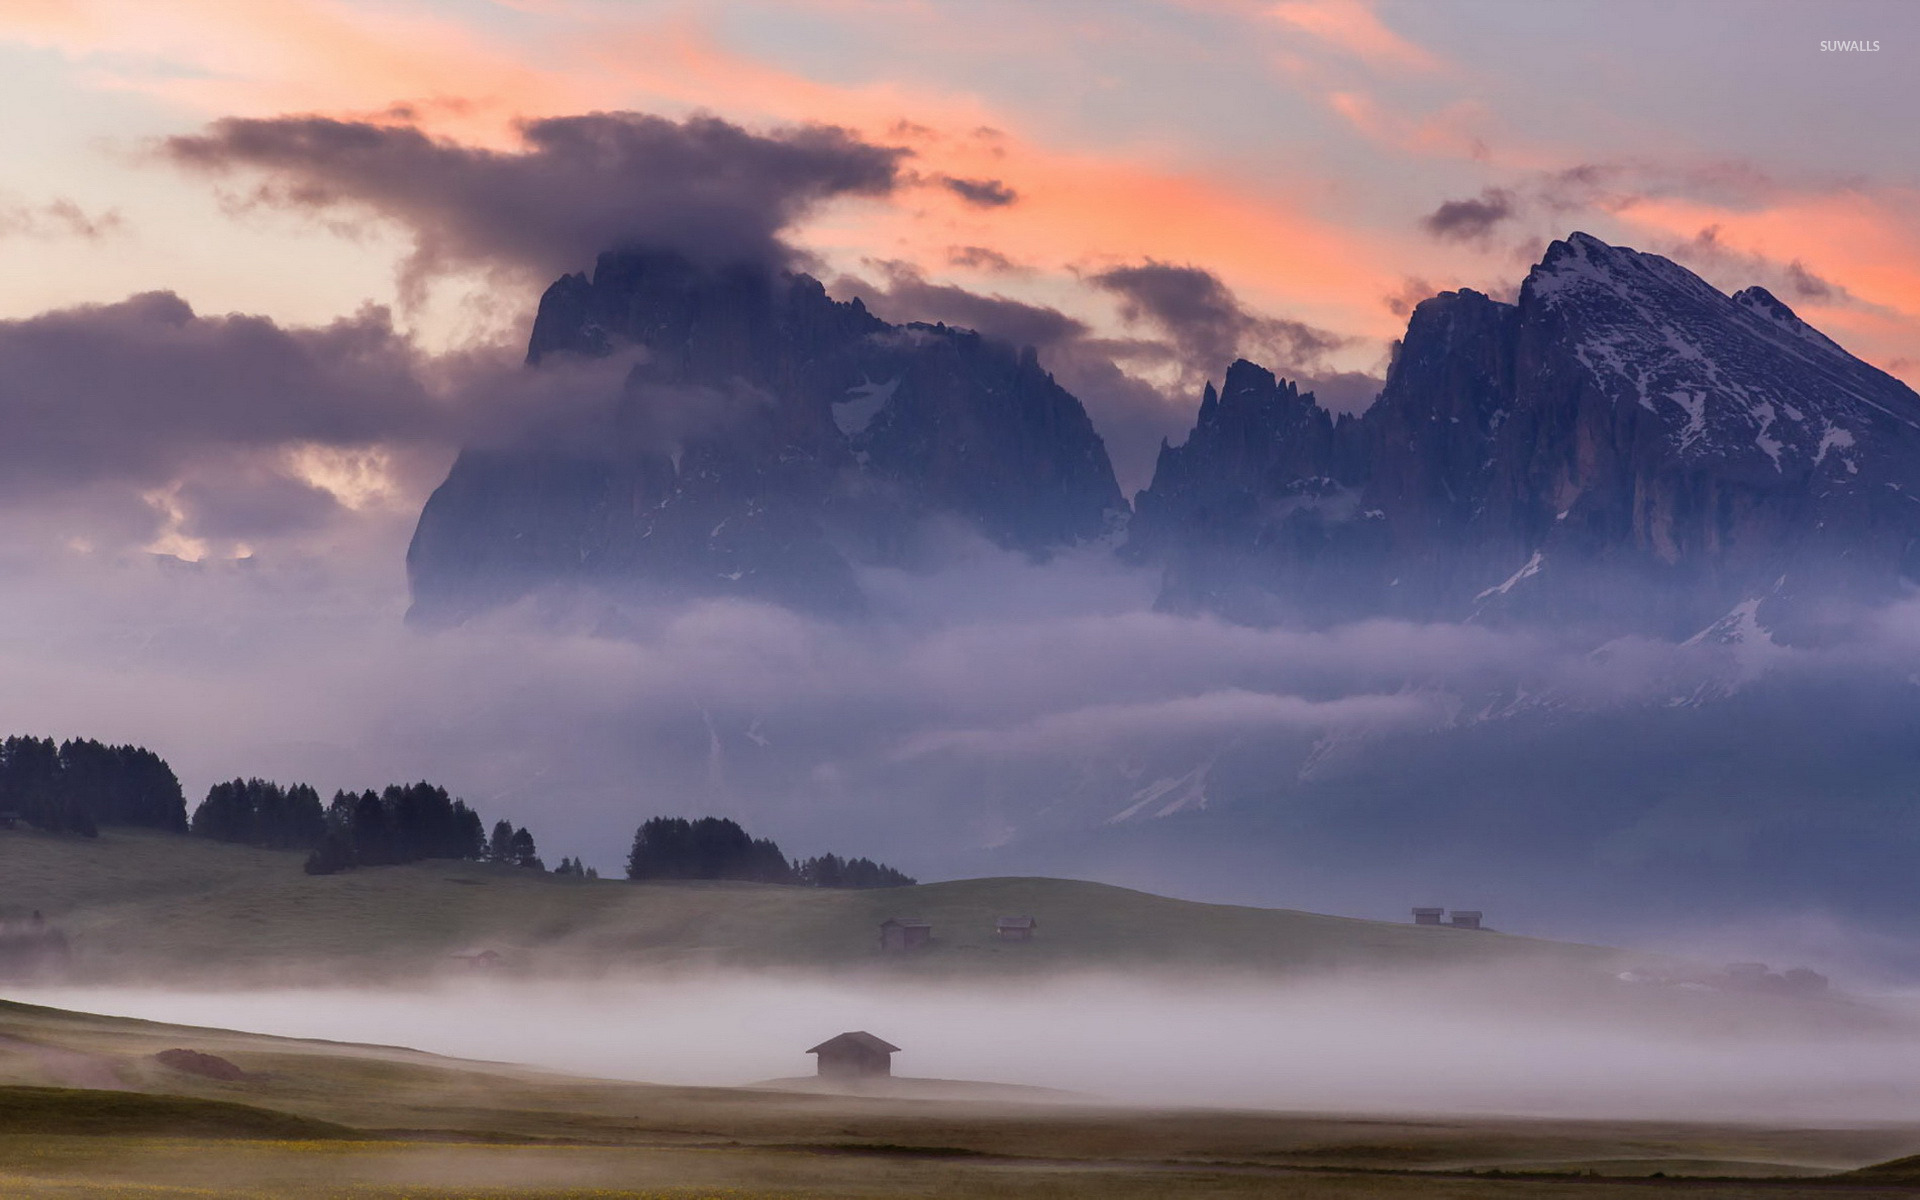 Amazing Wallpaper Mountain Fog - rocky-mountains-hiding-in-the-fog-46102-1920x1200  You Should Have_833538.jpg